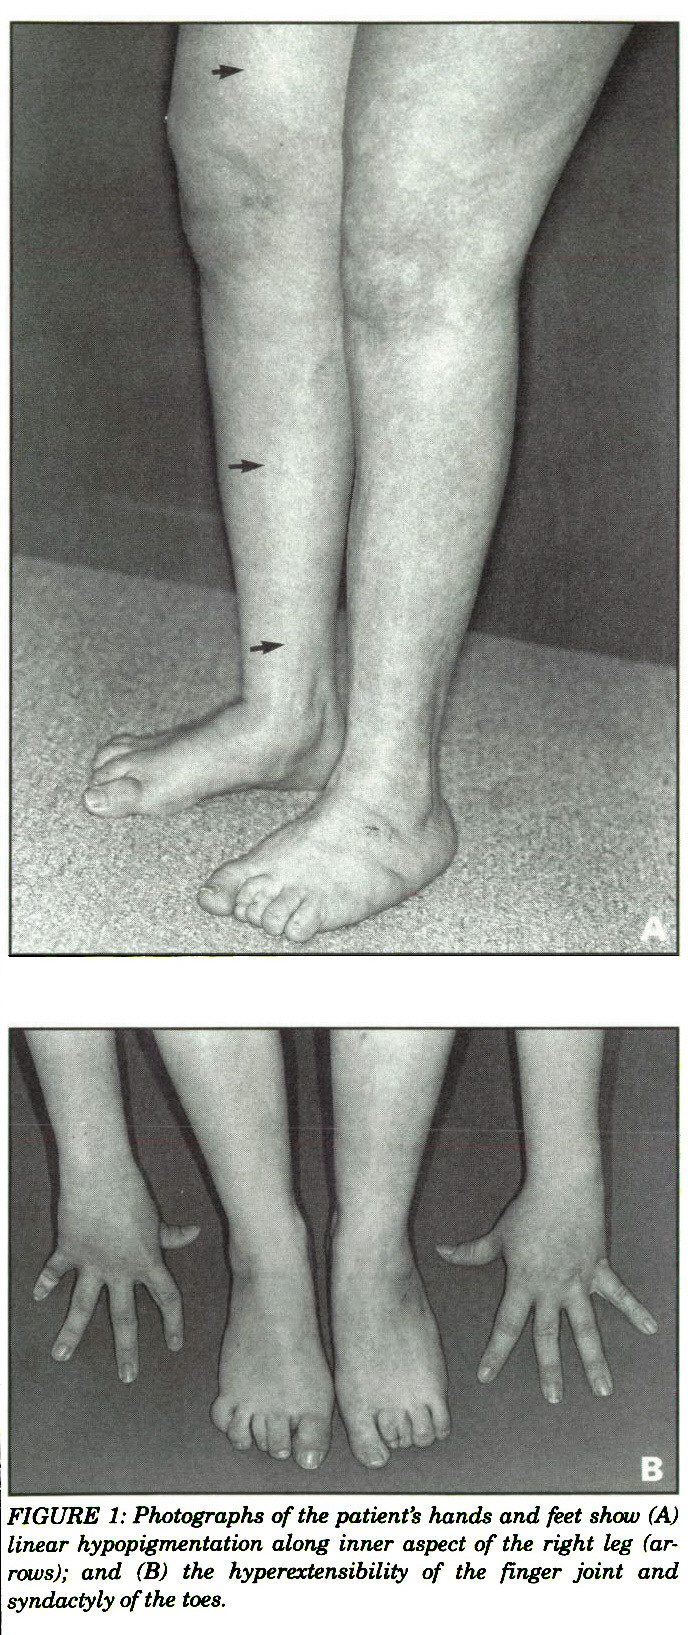 FIGURE 1: Photographs of the patient's hands and feet show (A) linear hypopigmentation along inner aspect of the right leg (arrows); and (B) the hyperextensibility of the finger joint and syndactyly of the toes.